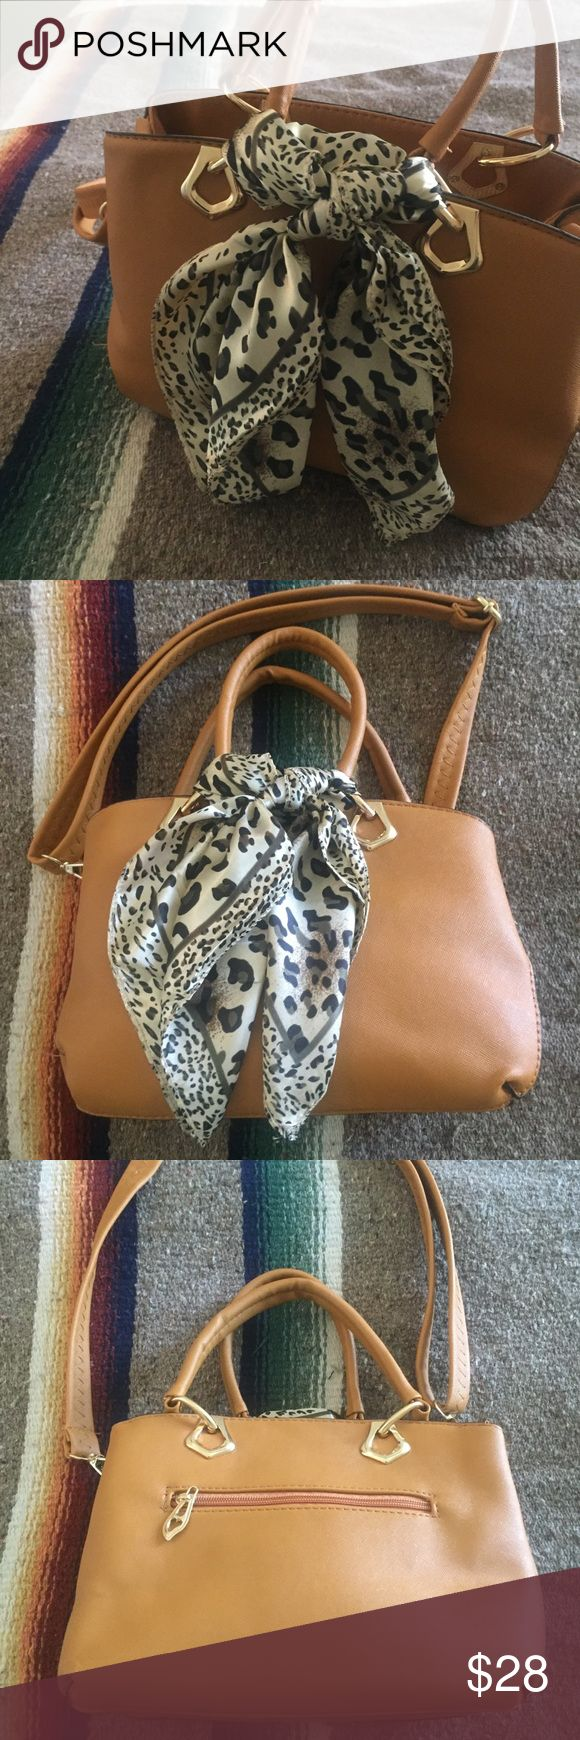 Satchel Purse with Scarf beautiful vegan leather buttery brown bag, UK 🇬🇧 brand Florence and Fred. got as a gift and never used, nwot. long strap or shorter handles, cute leopard print scarf. gold zippers, compartments inside for glasses, etc. Bags Satchels